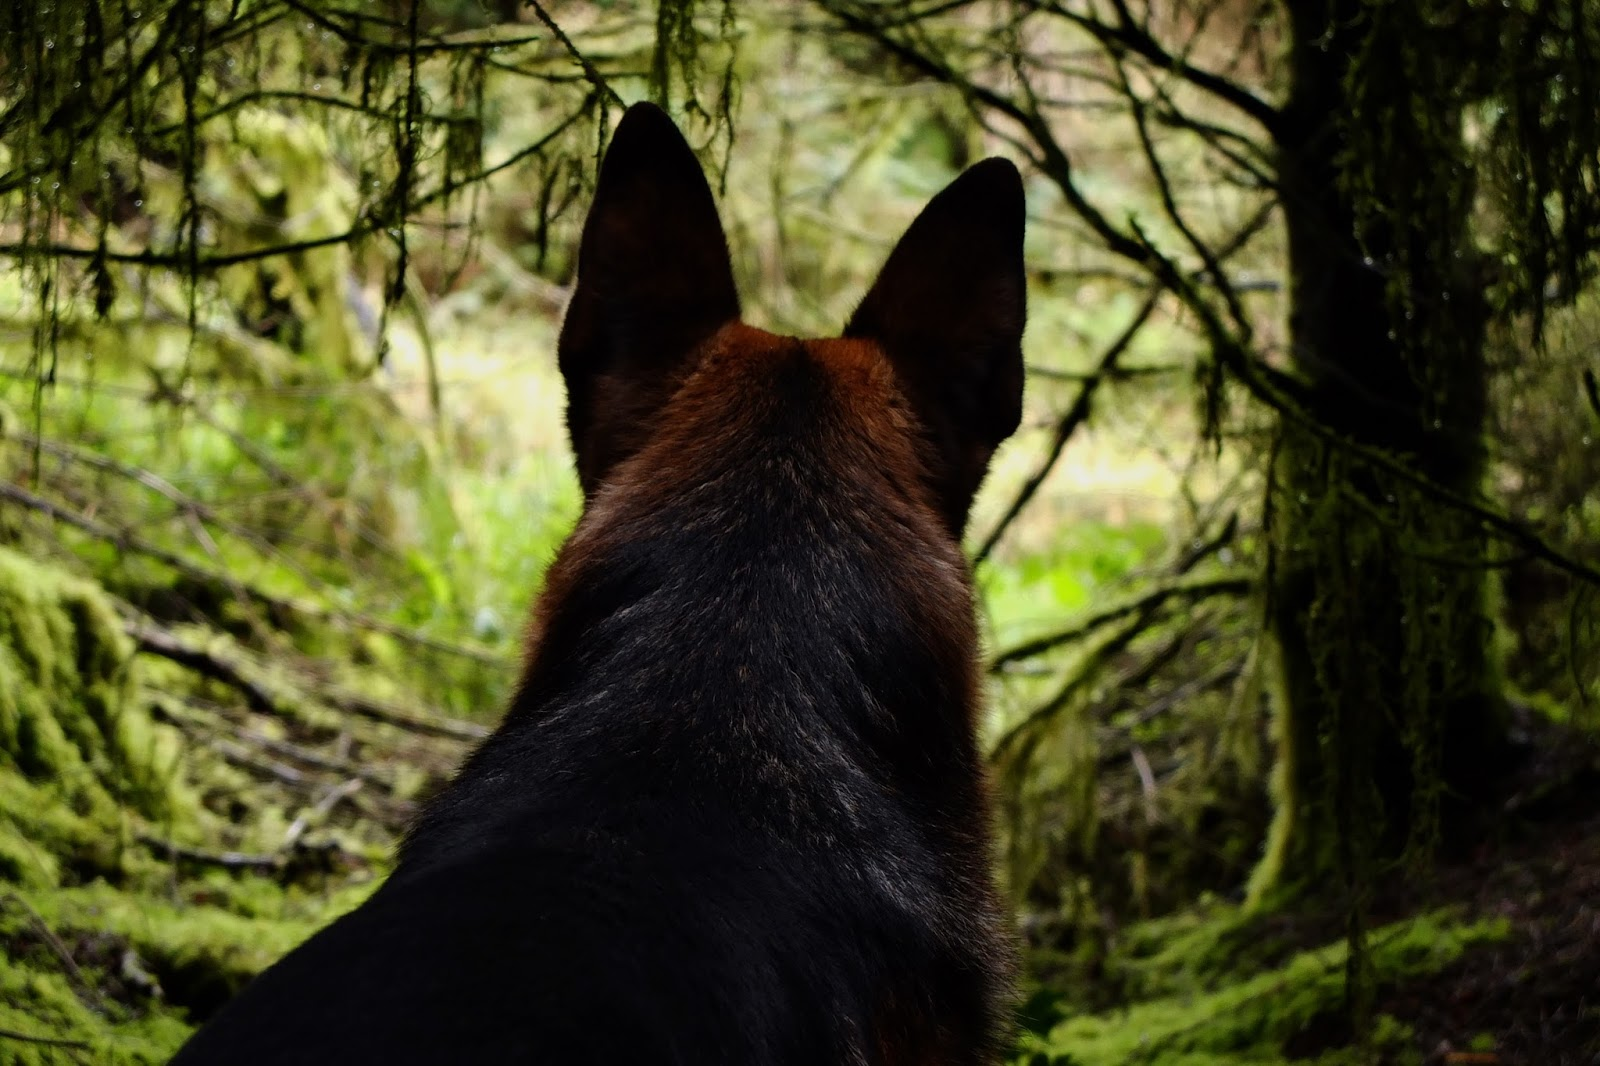 The back of a German Shepherd looking out of the forest with his ears up.